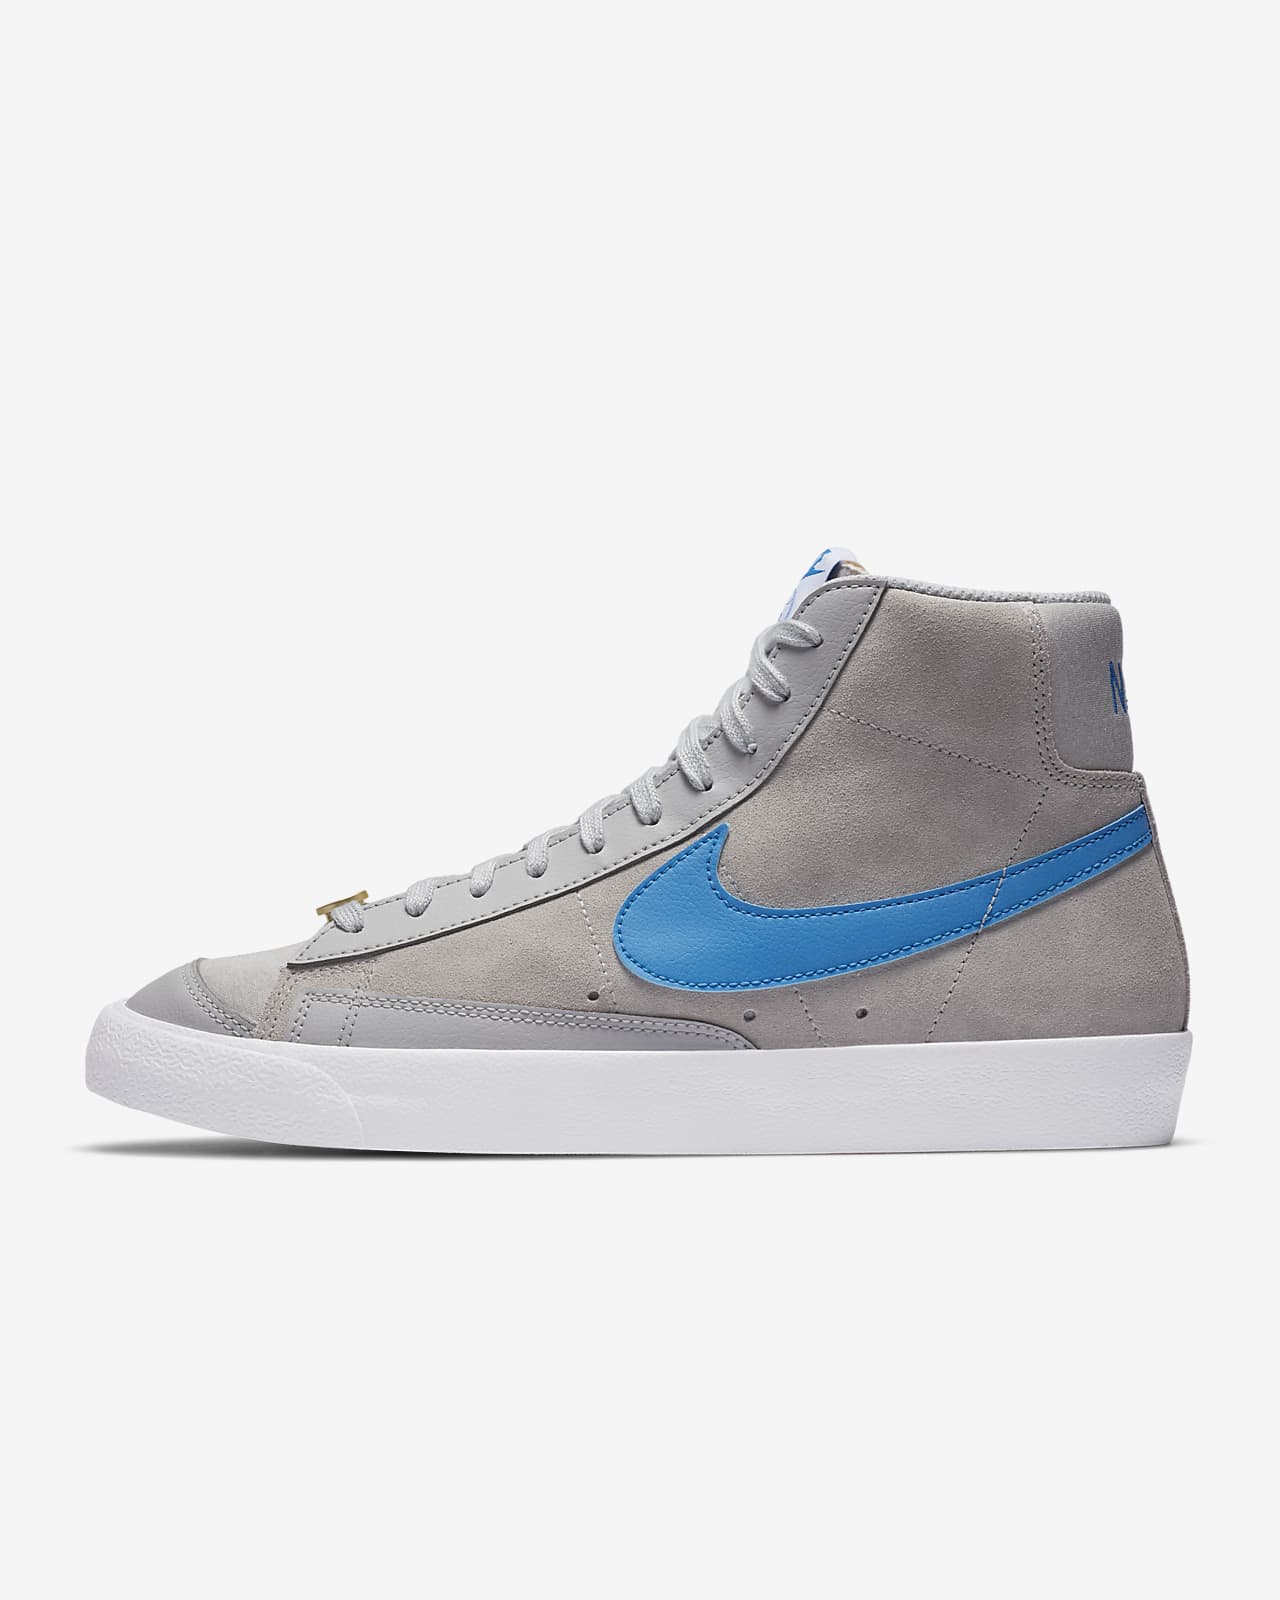 Nike Blazer Mid '77 NRG Men's Shoe